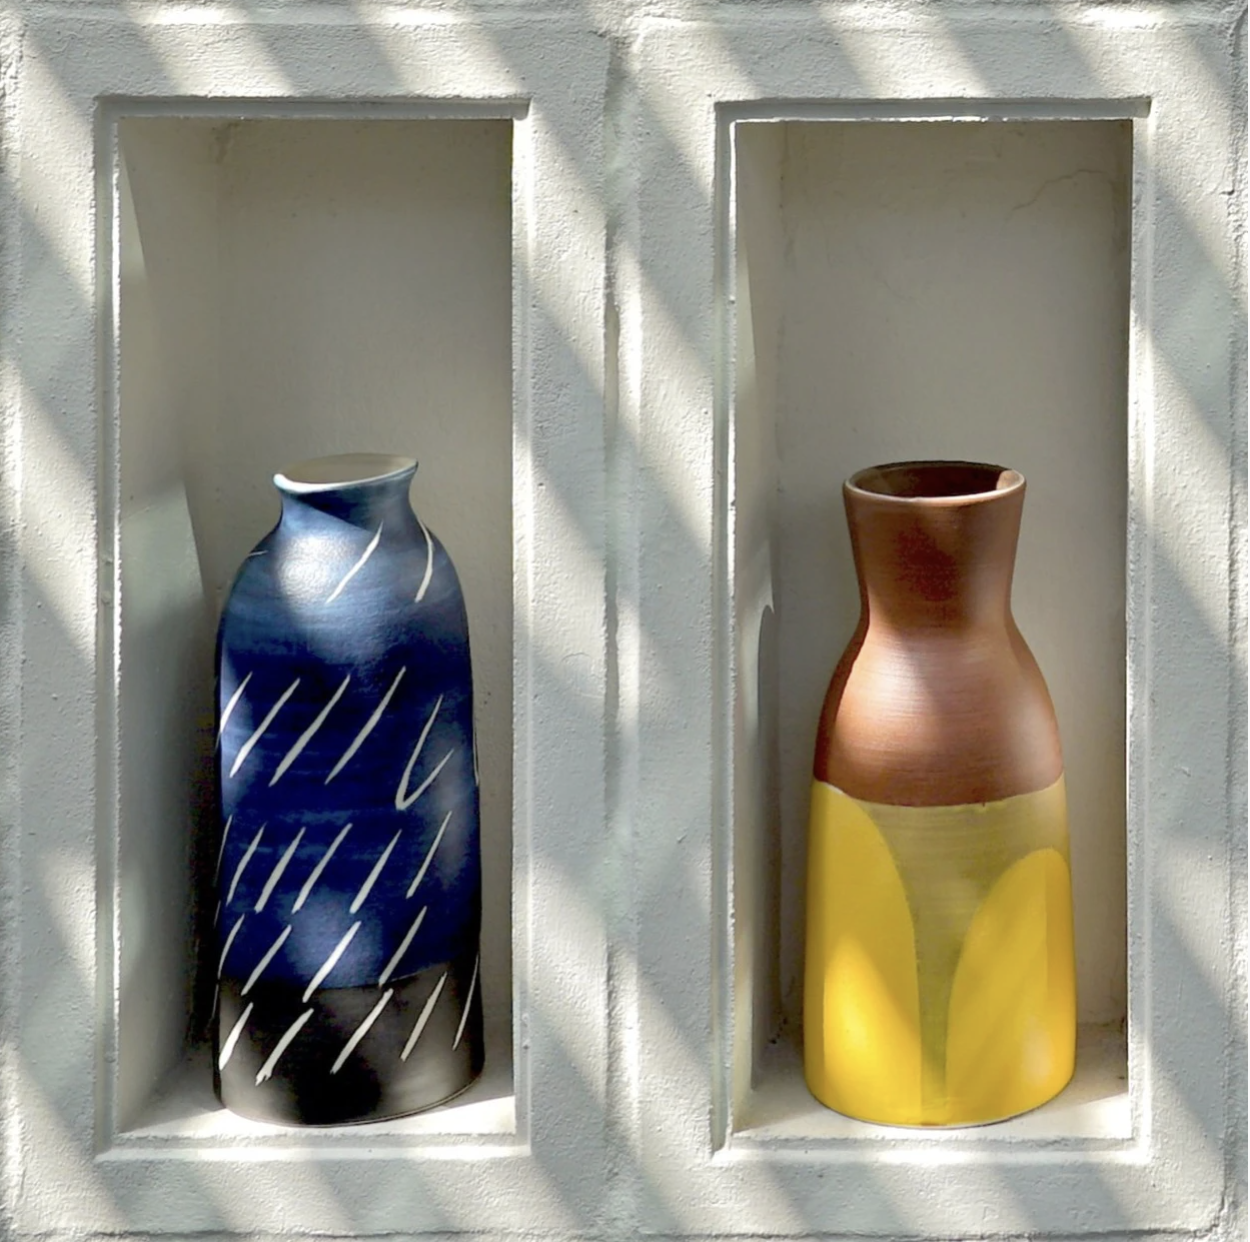 Vases curated and sourced from Chiang Mai,